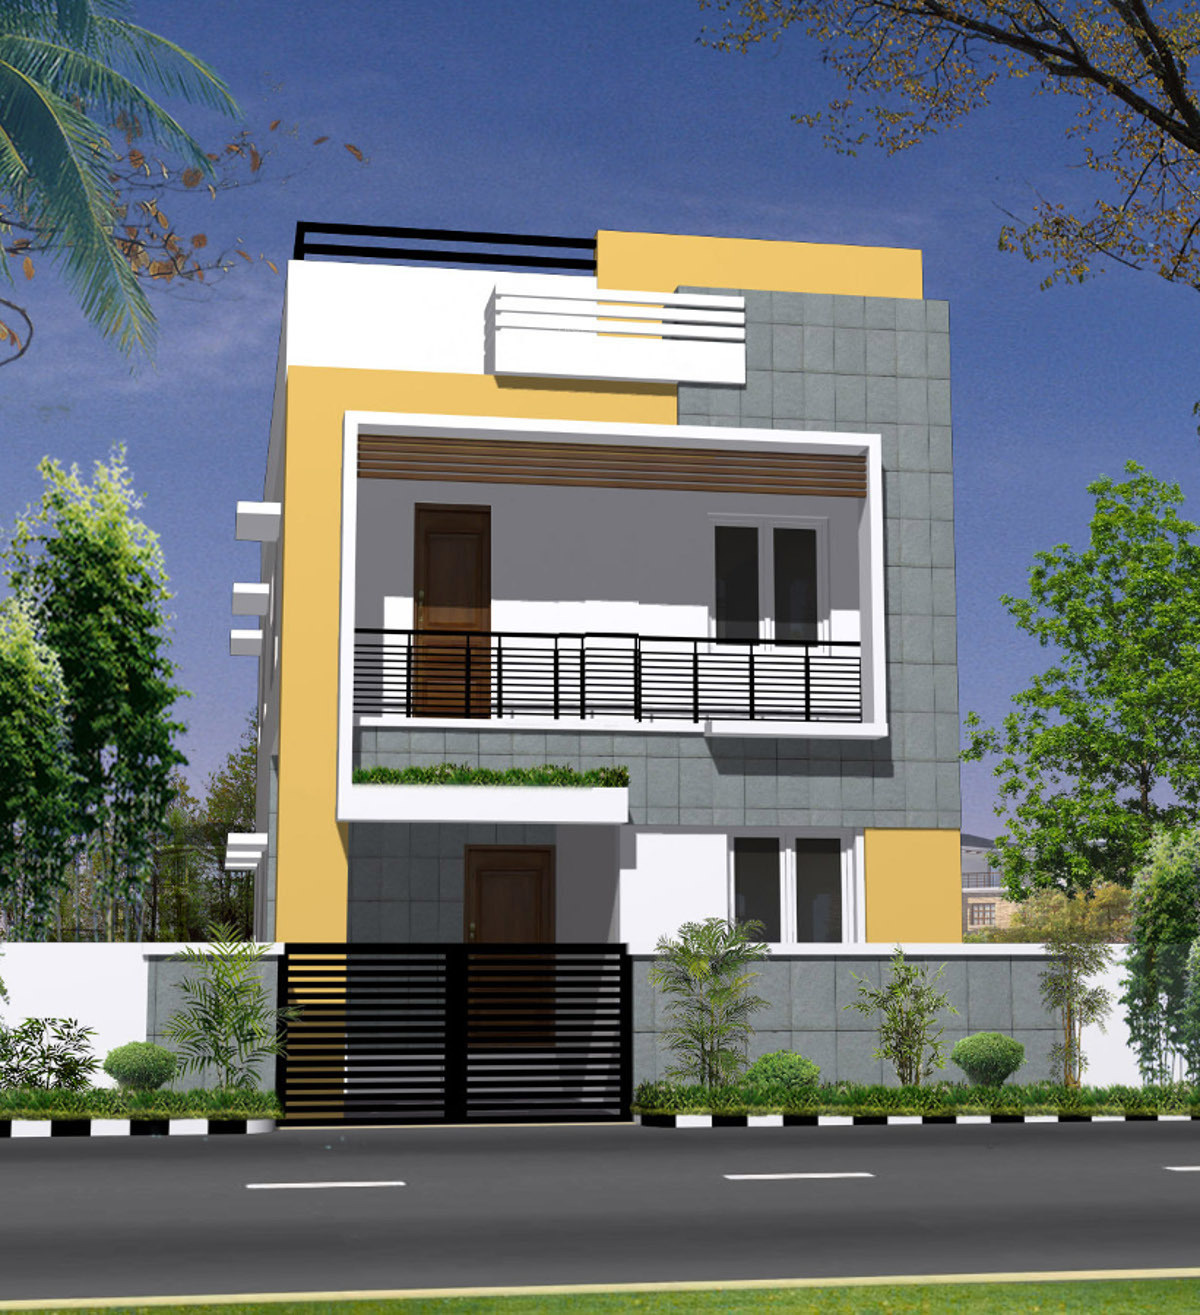 2 Storey Modern House Floor Plan Elevation Image